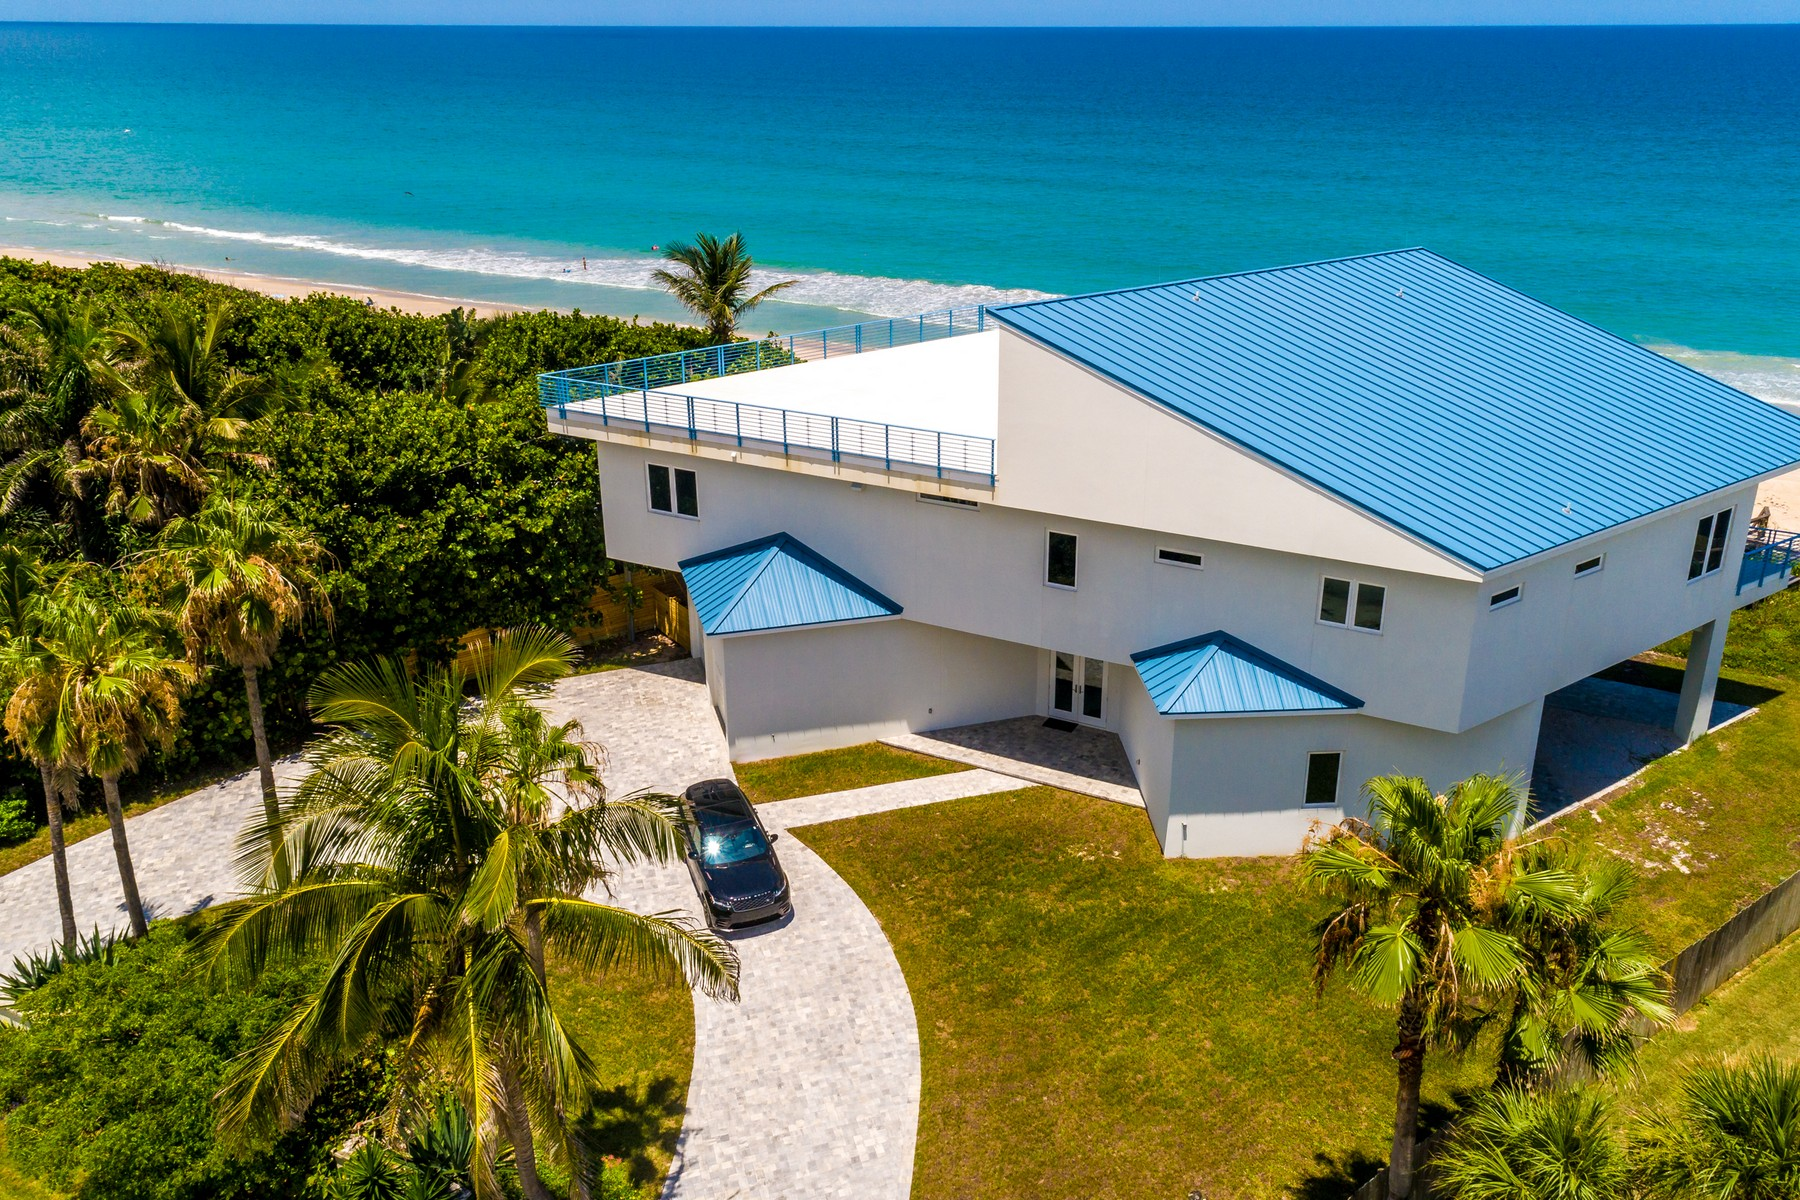 Single Family Homes for Sale at Contemporary Oceanfront Home 5285 S. Highway A1A Melbourne Beach, Florida 32951 United States